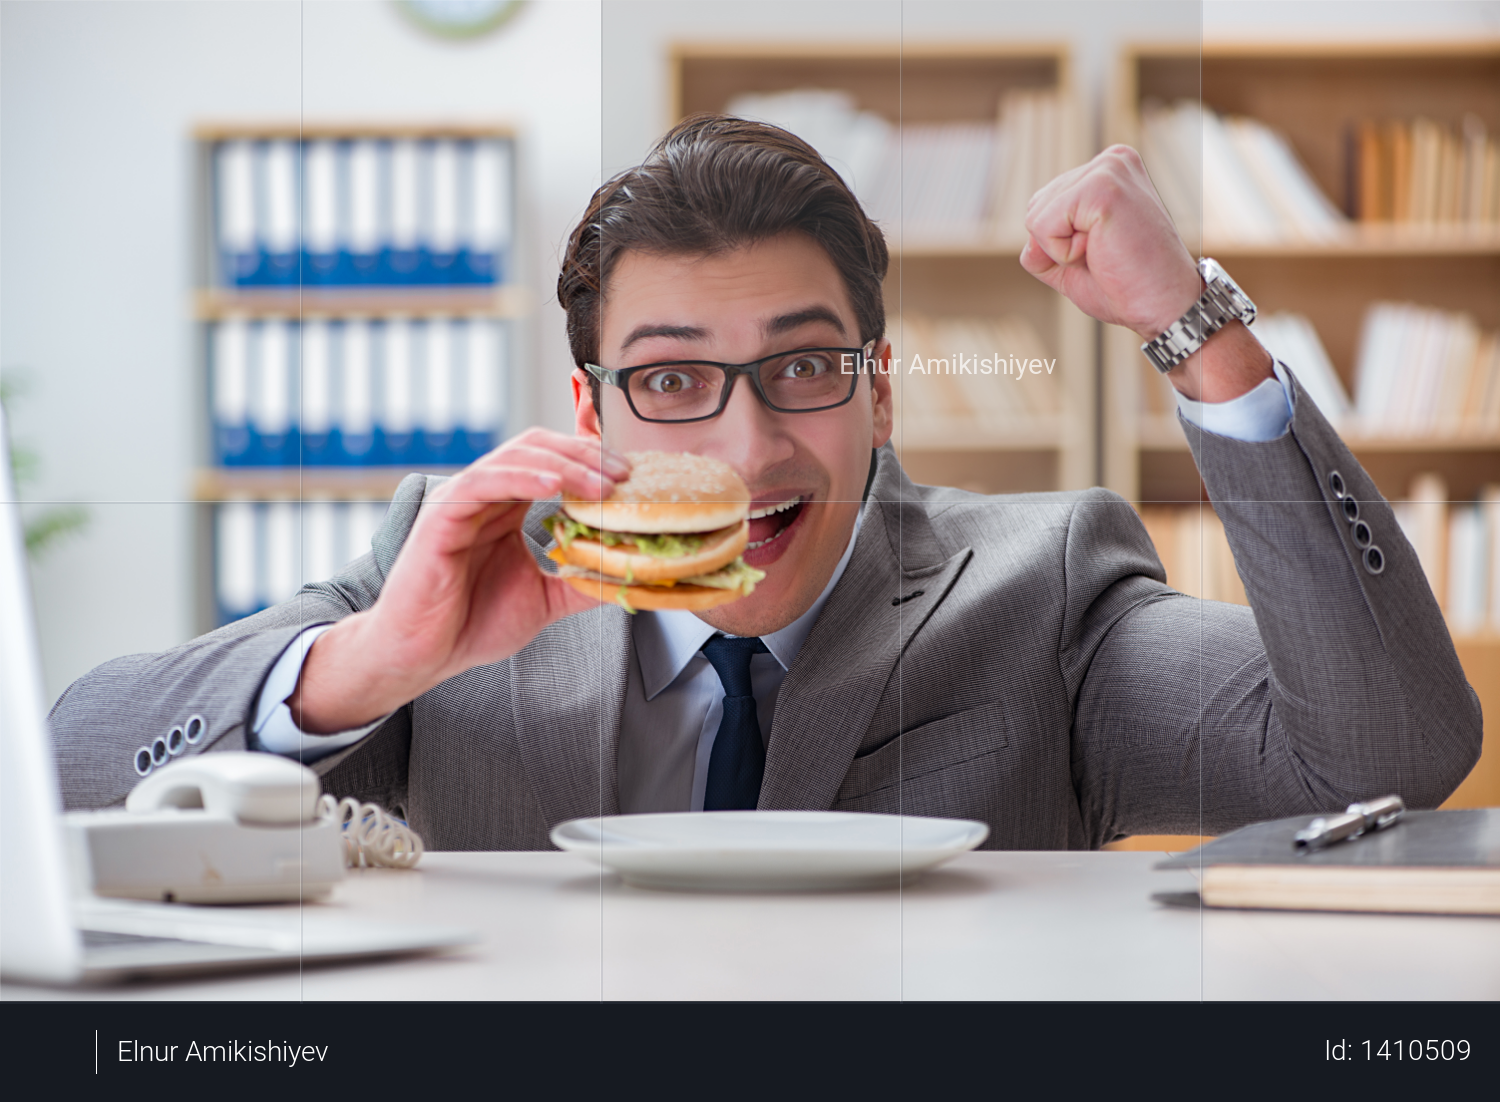 Hungry funny businessman eating junk food sandwich Photo